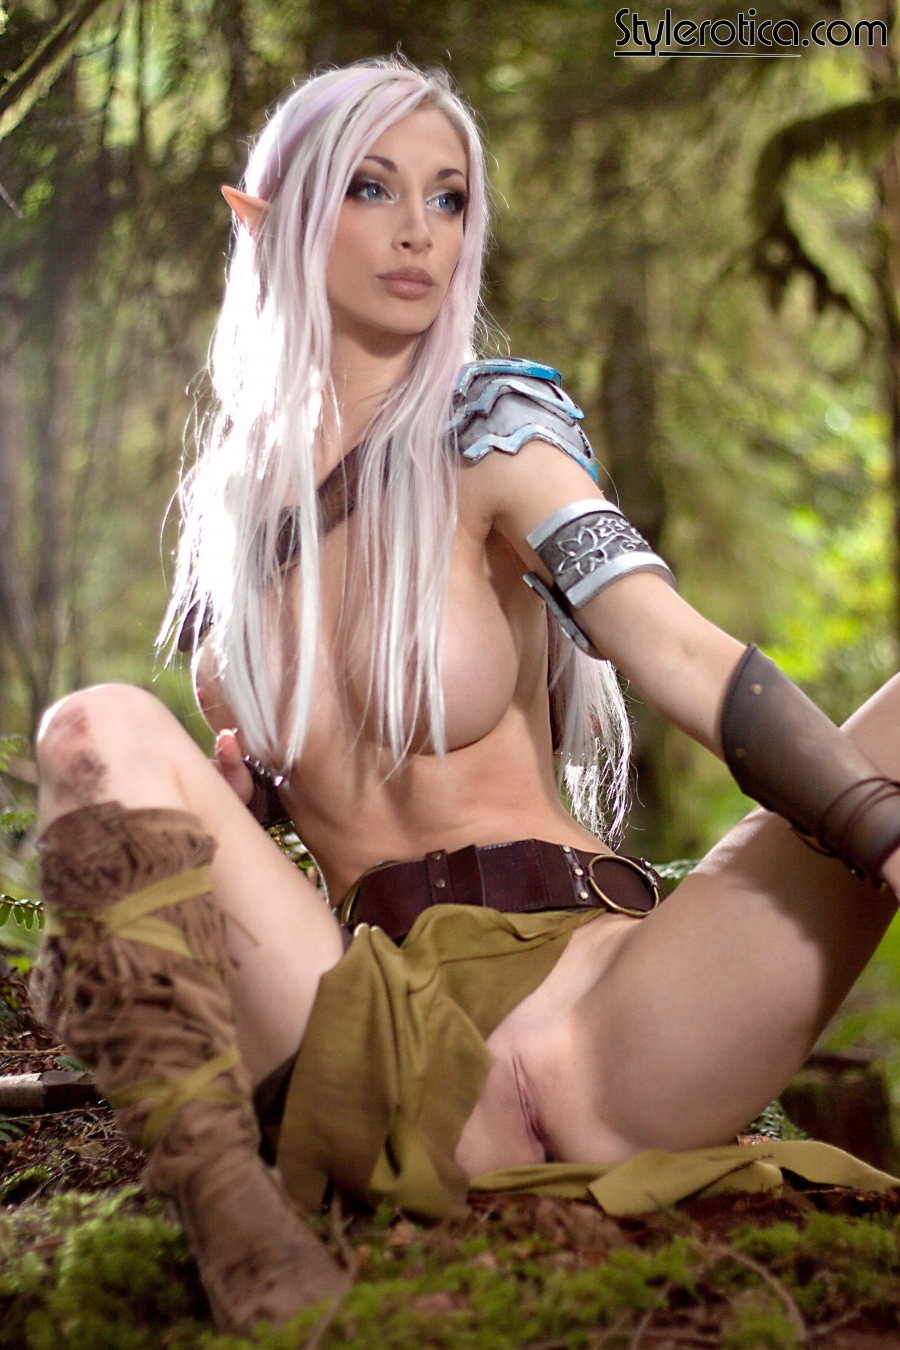 Fantasy hot nude elves pics hentai comics